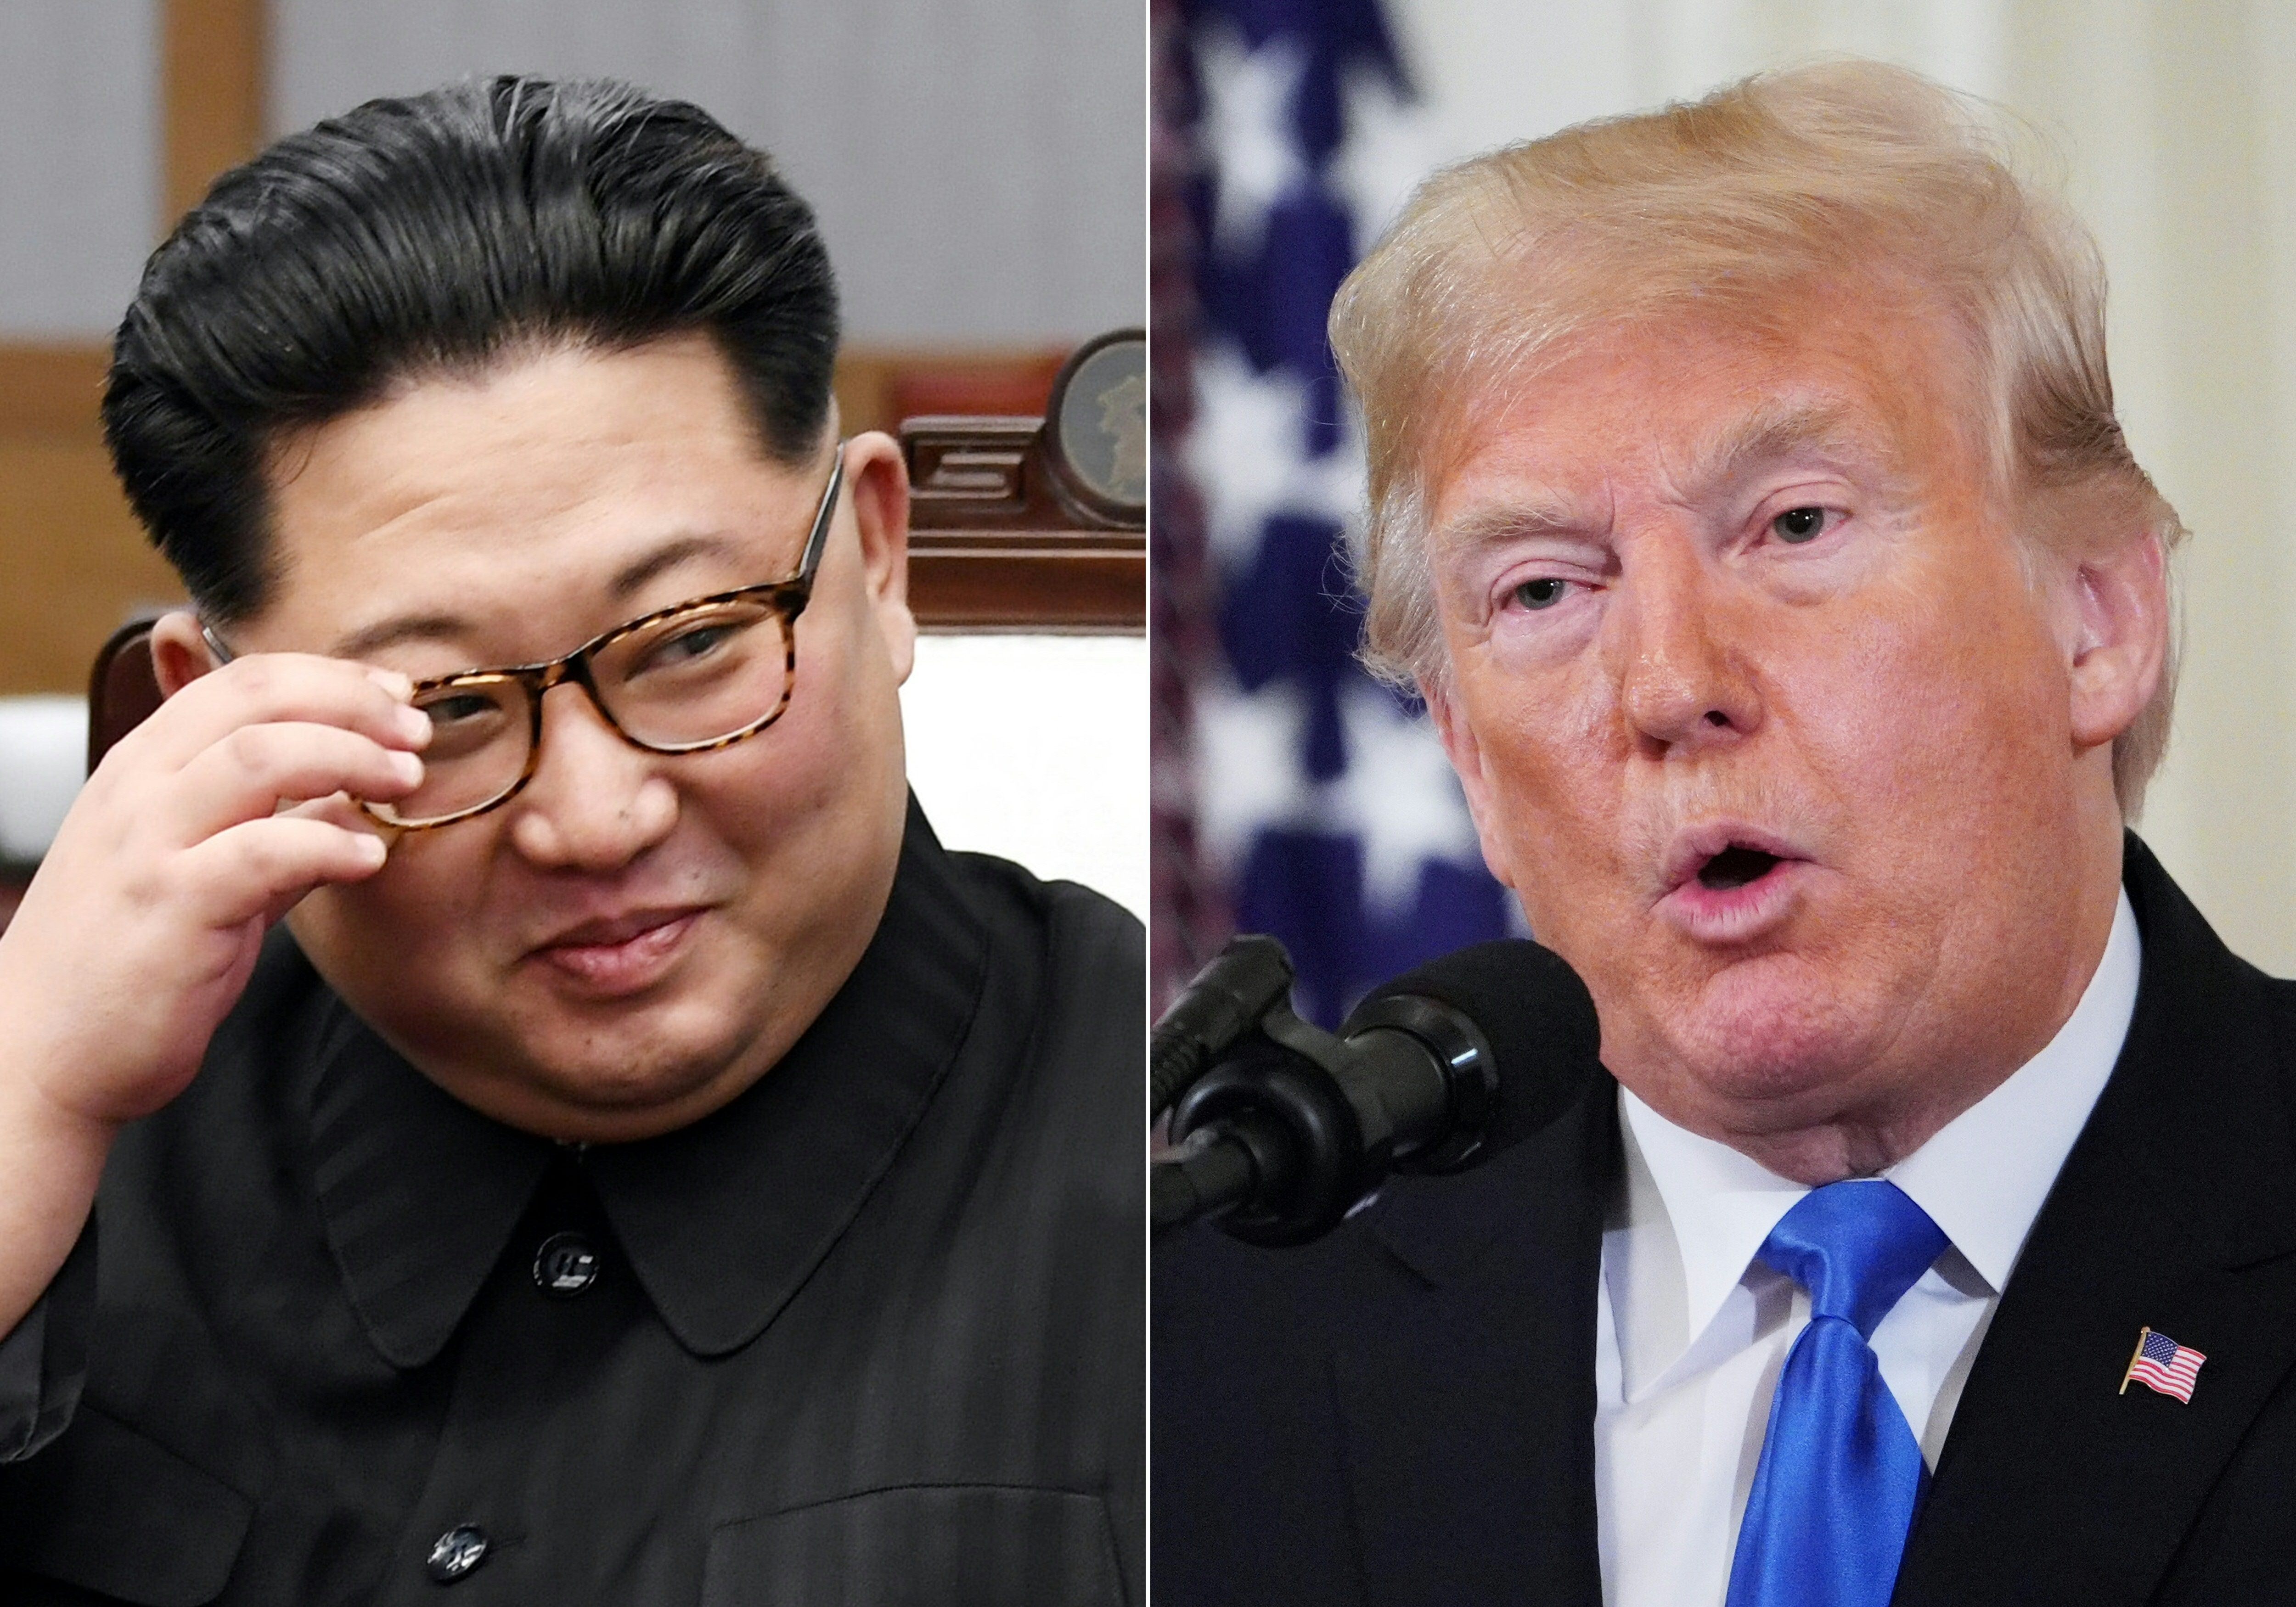 It's clearer than ever that the US's North Korea policy is in total chaos